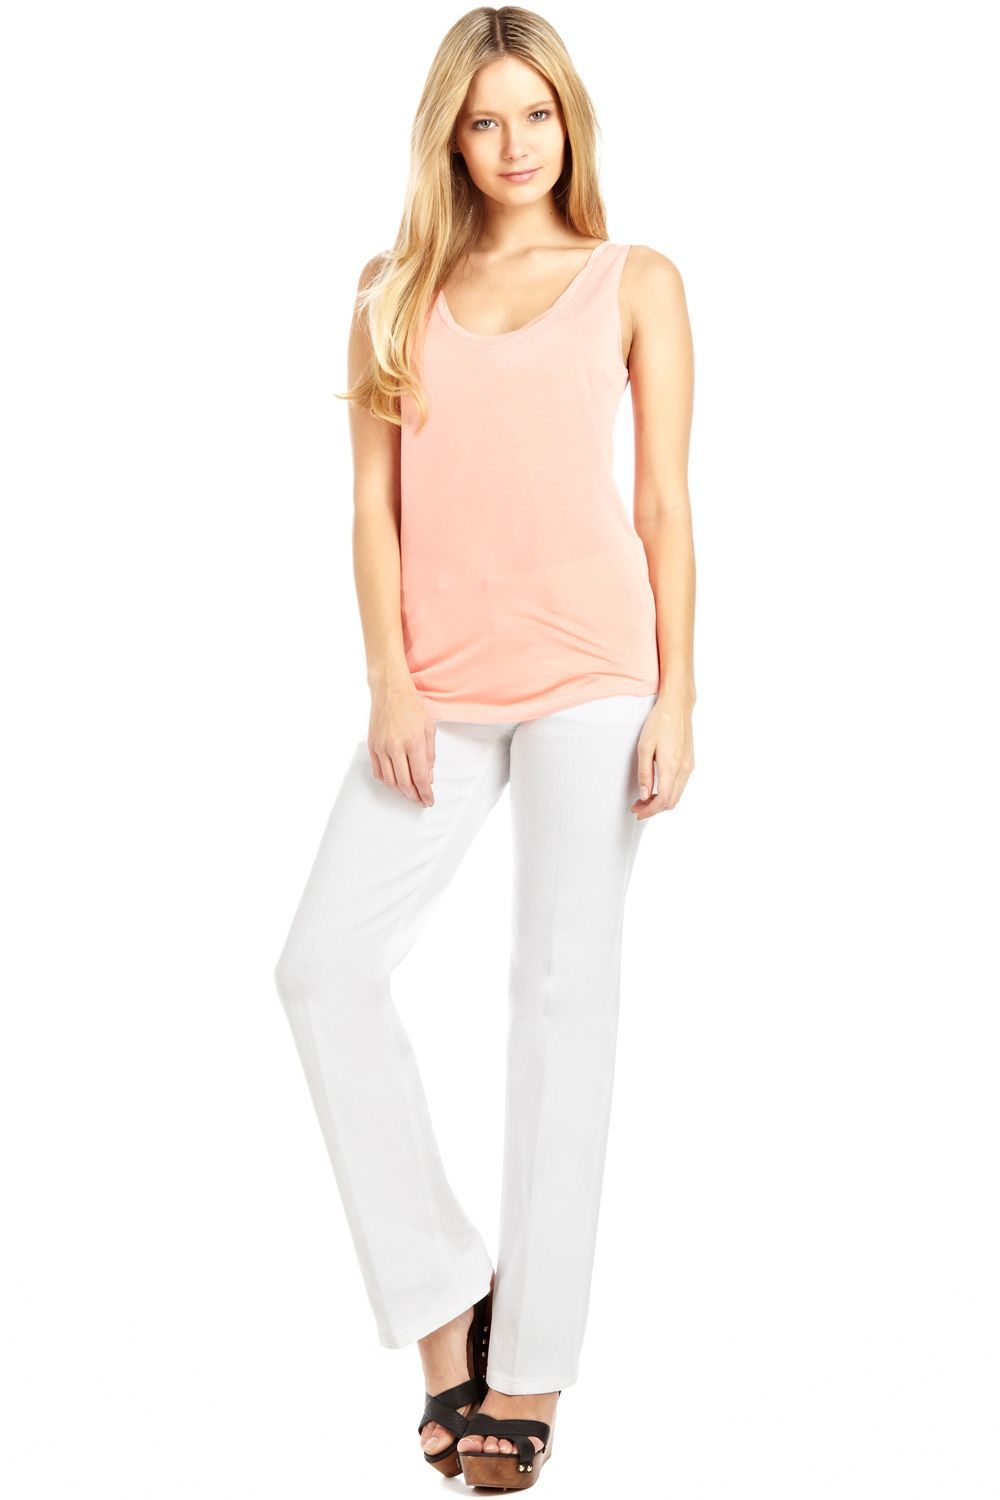 White scarlet regular jeans